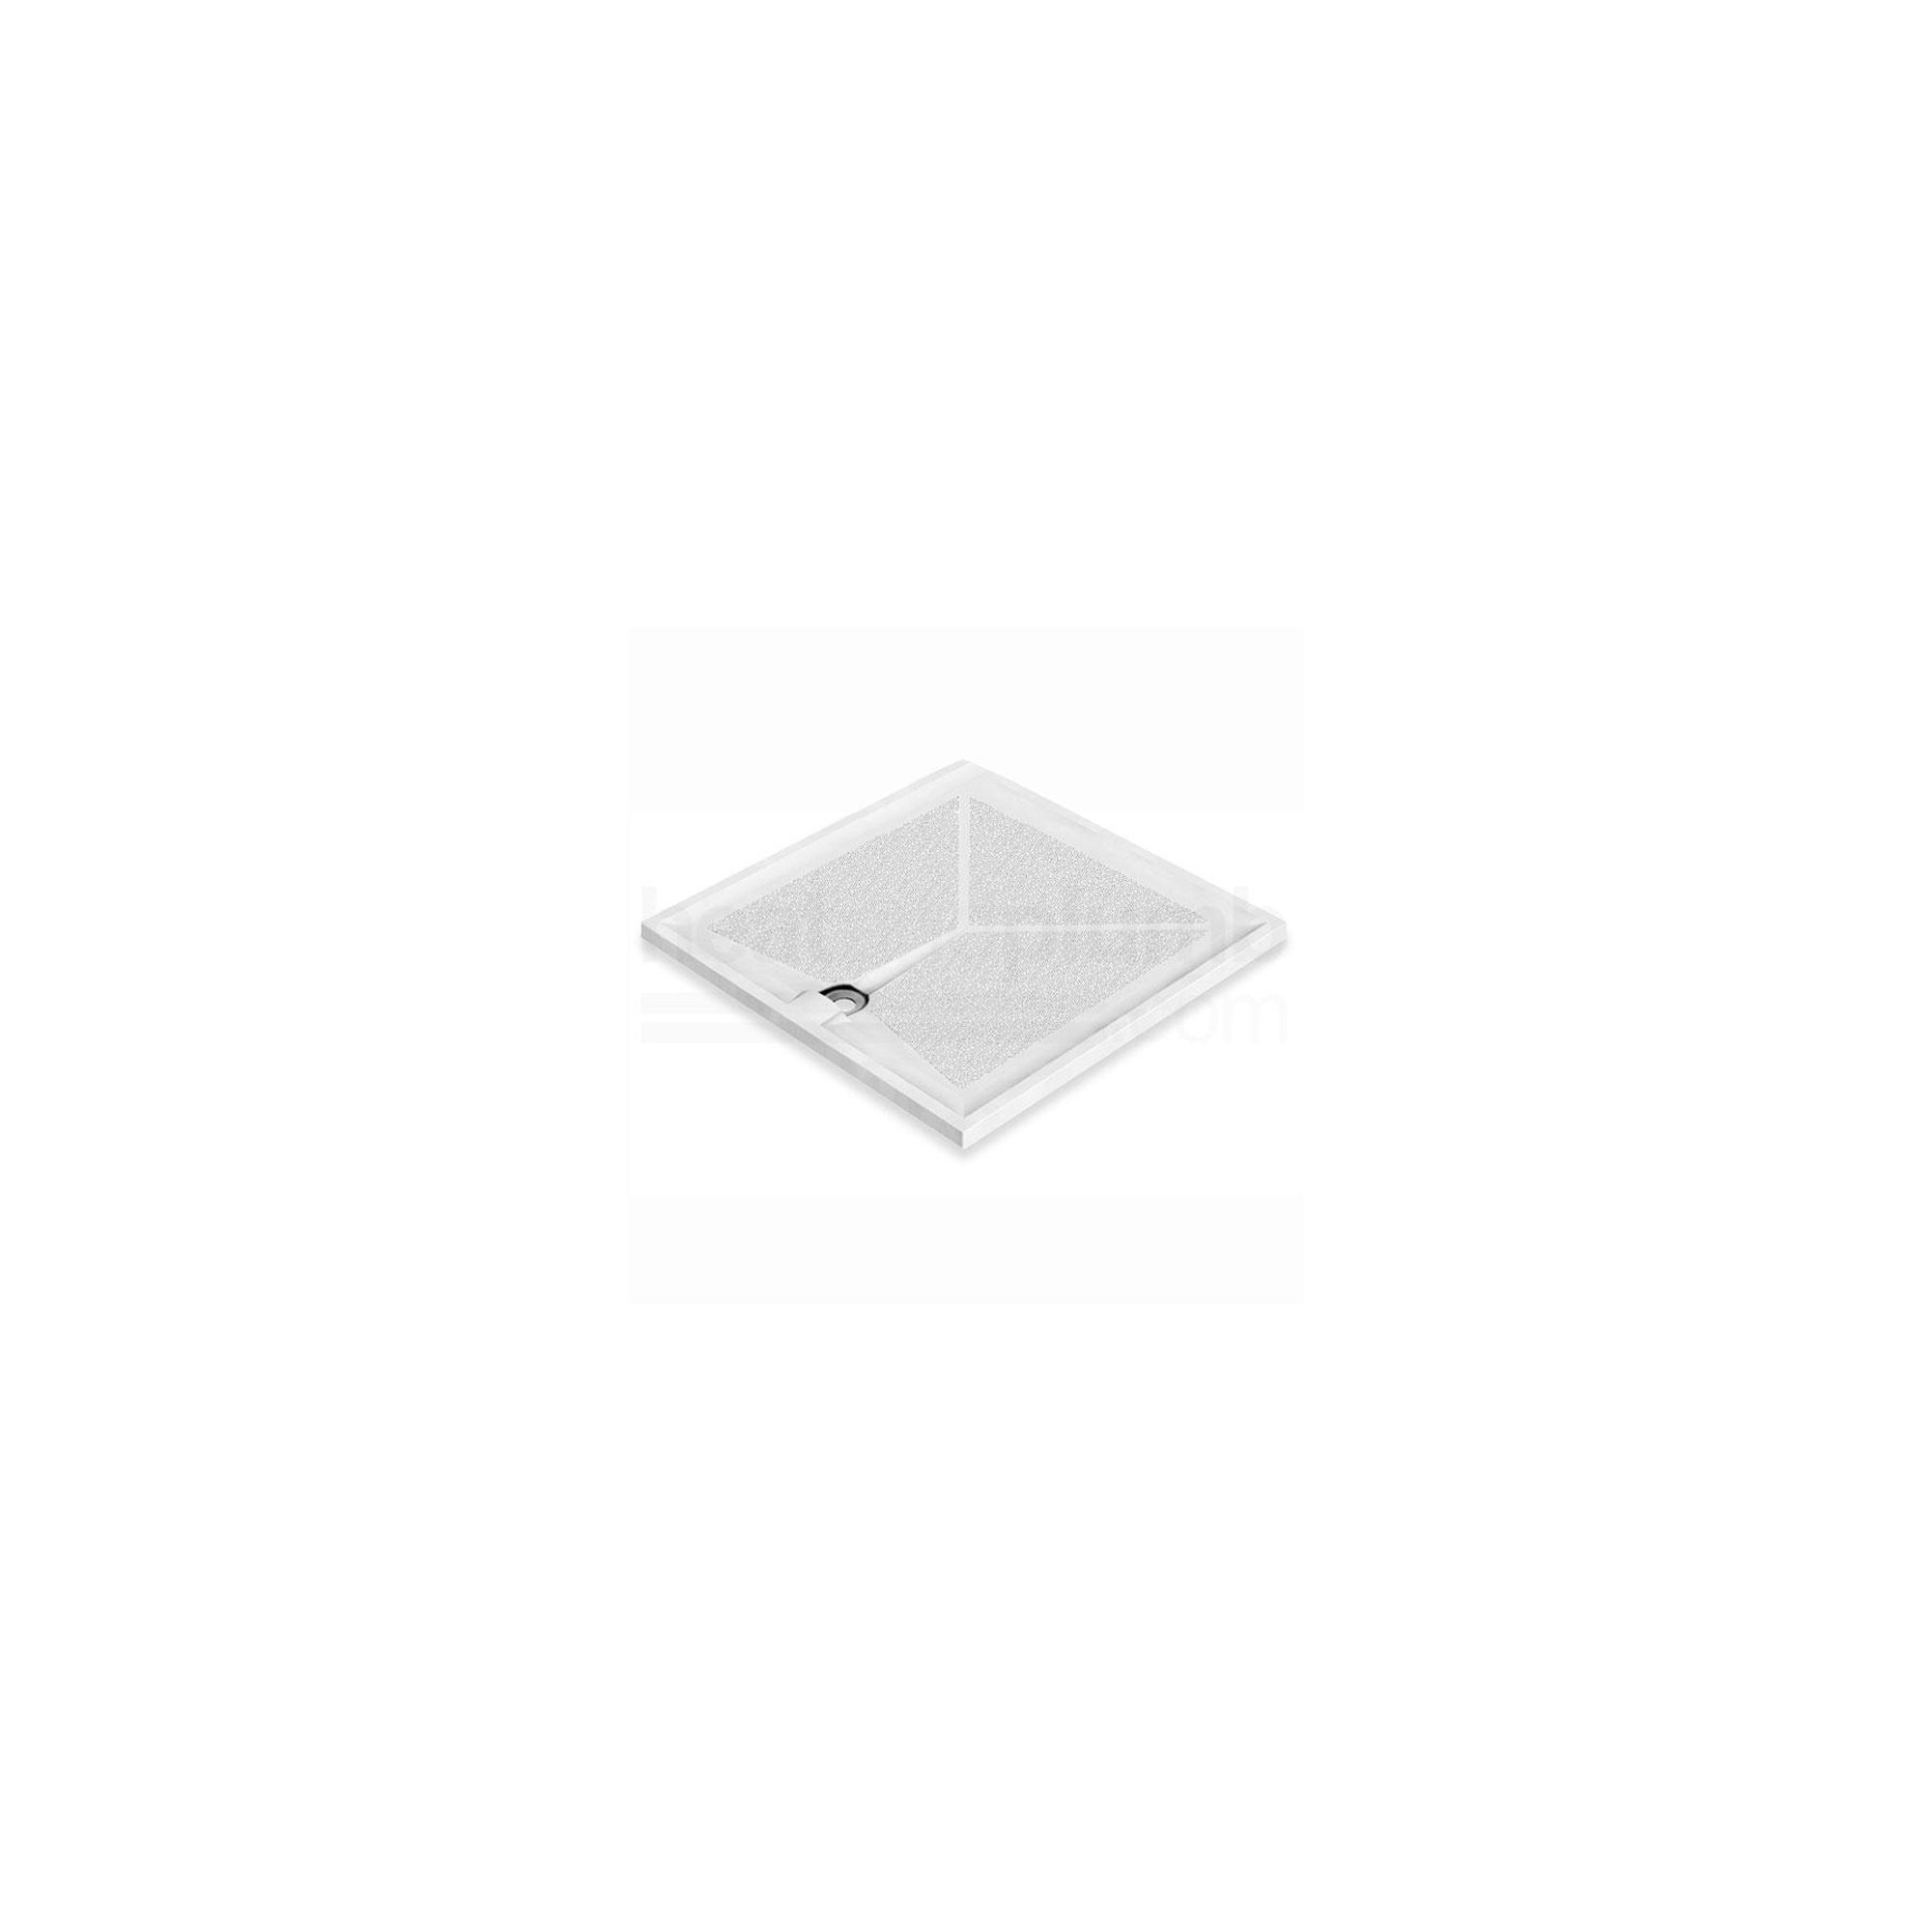 AKW Braddan Square Shower Tray 900mm x 900mm at Tesco Direct